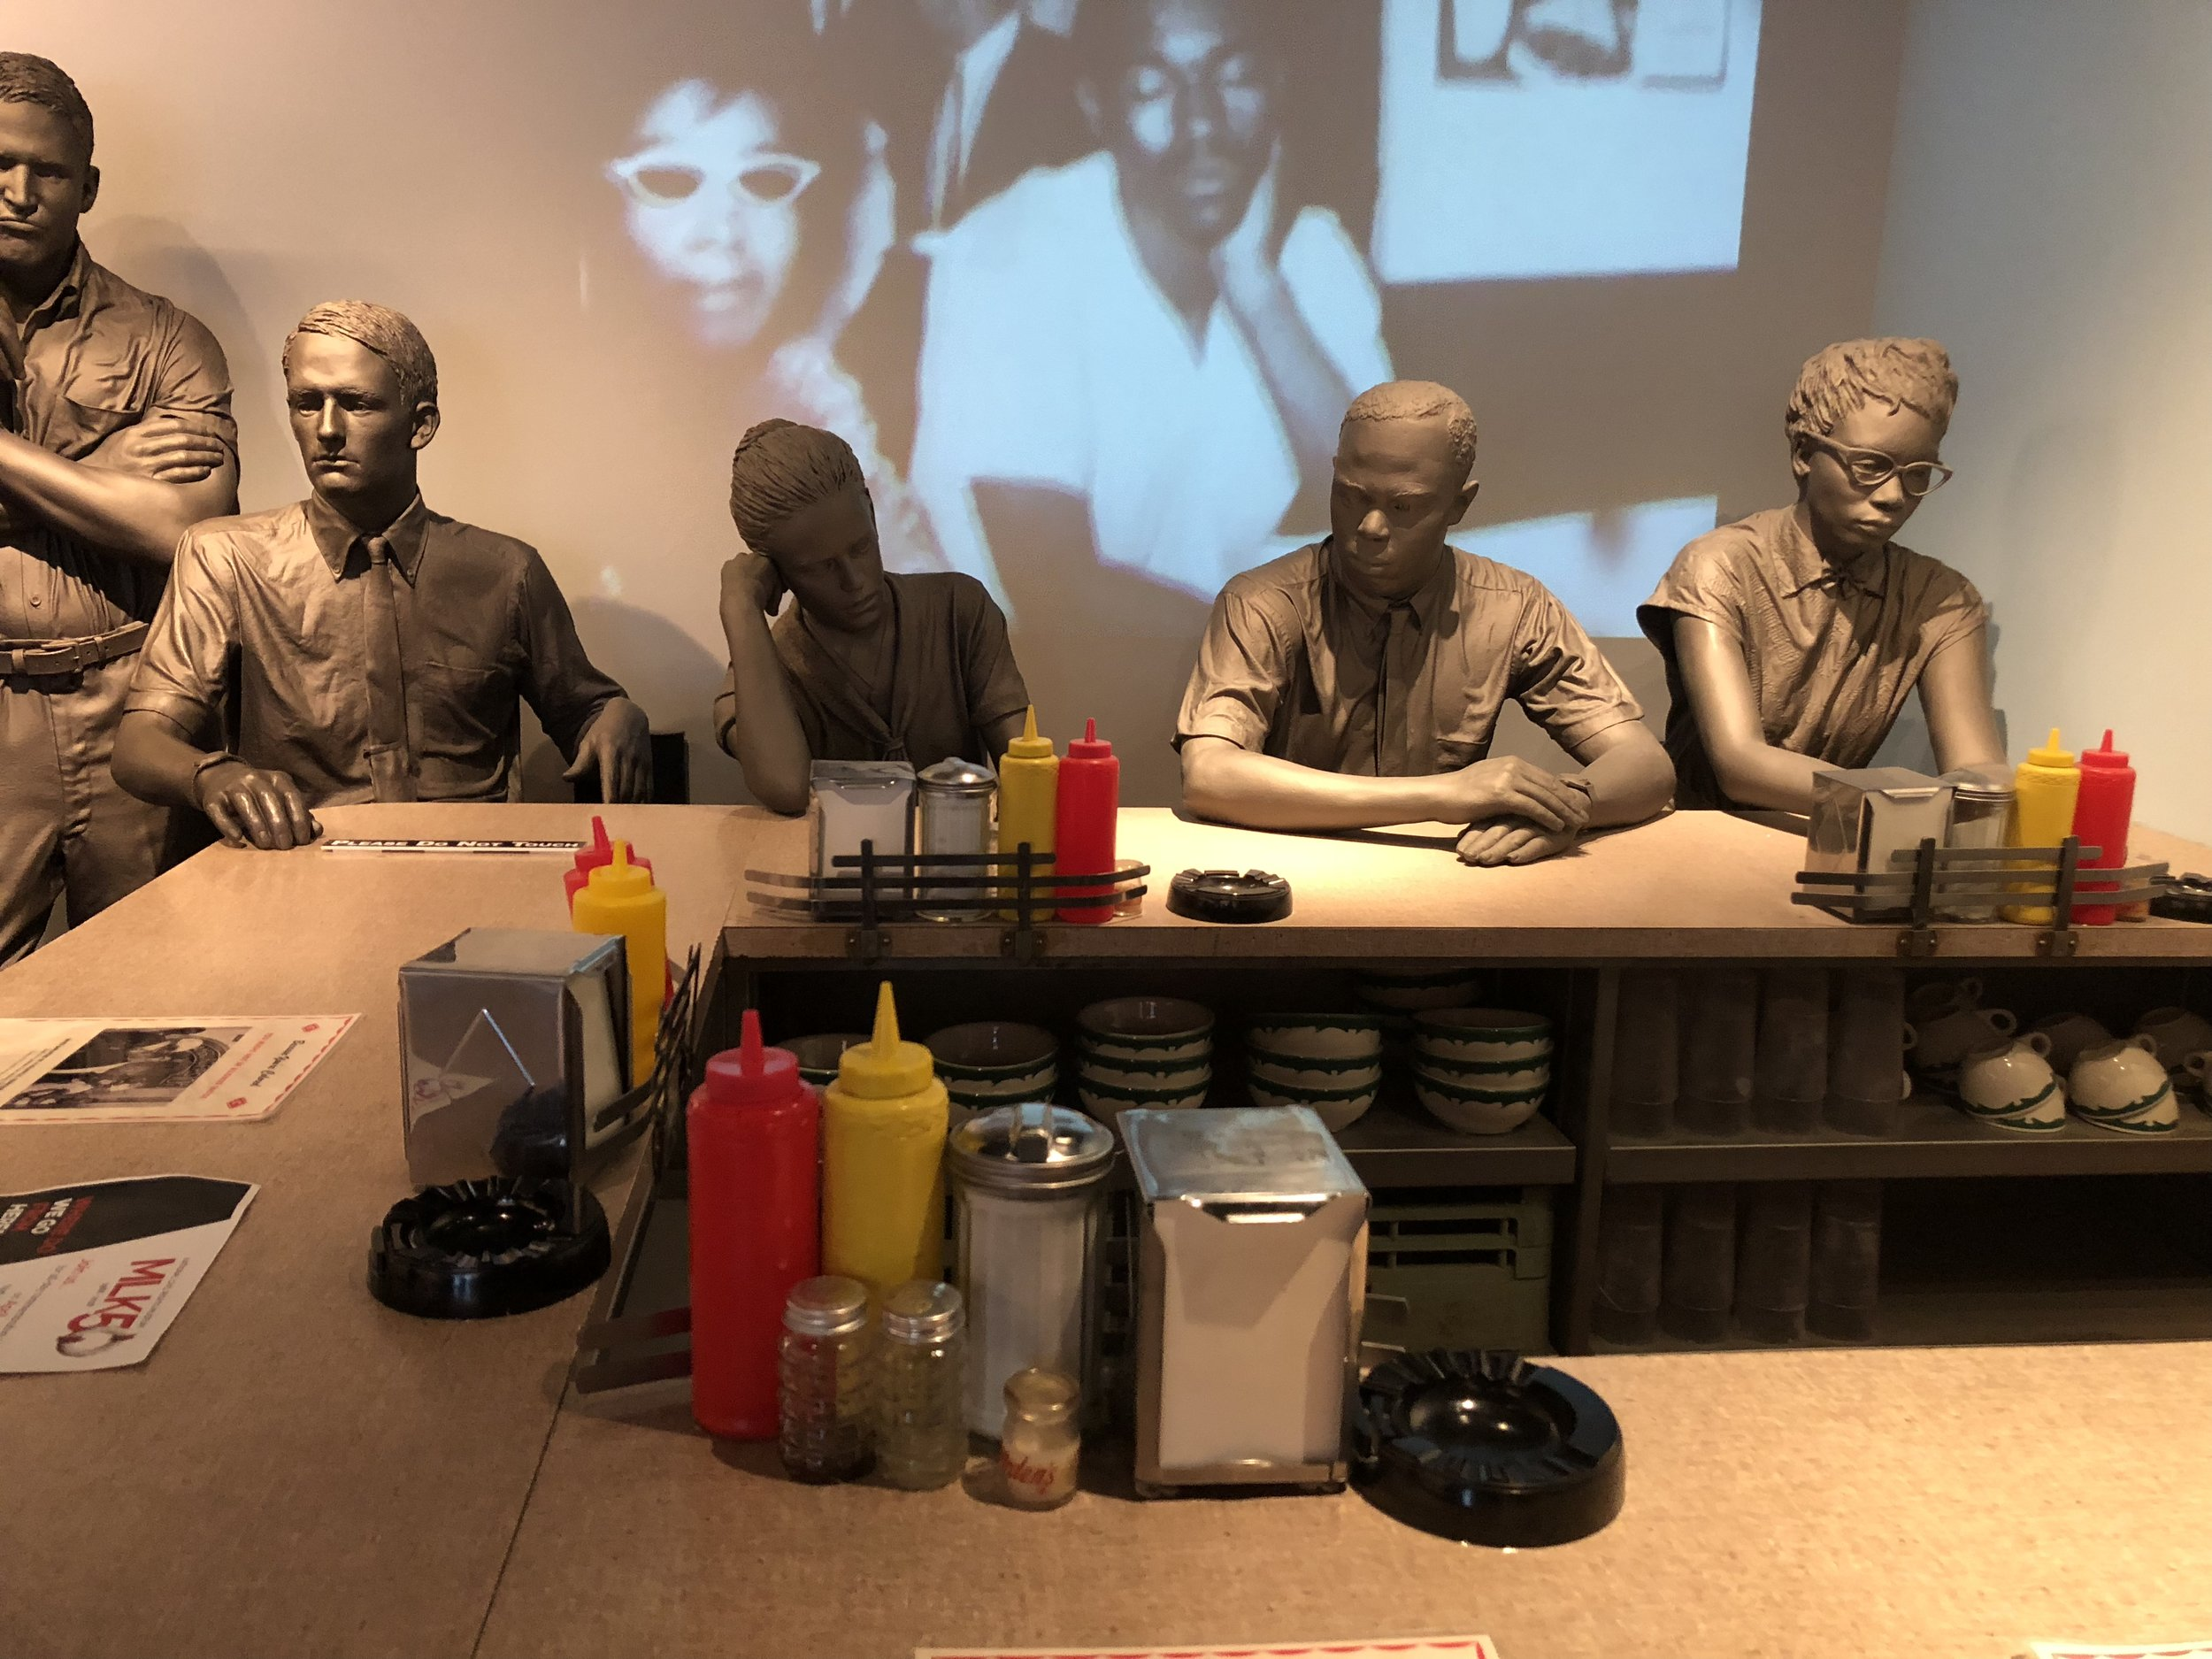 Sit-in exhibit of the Civil Rights Museum